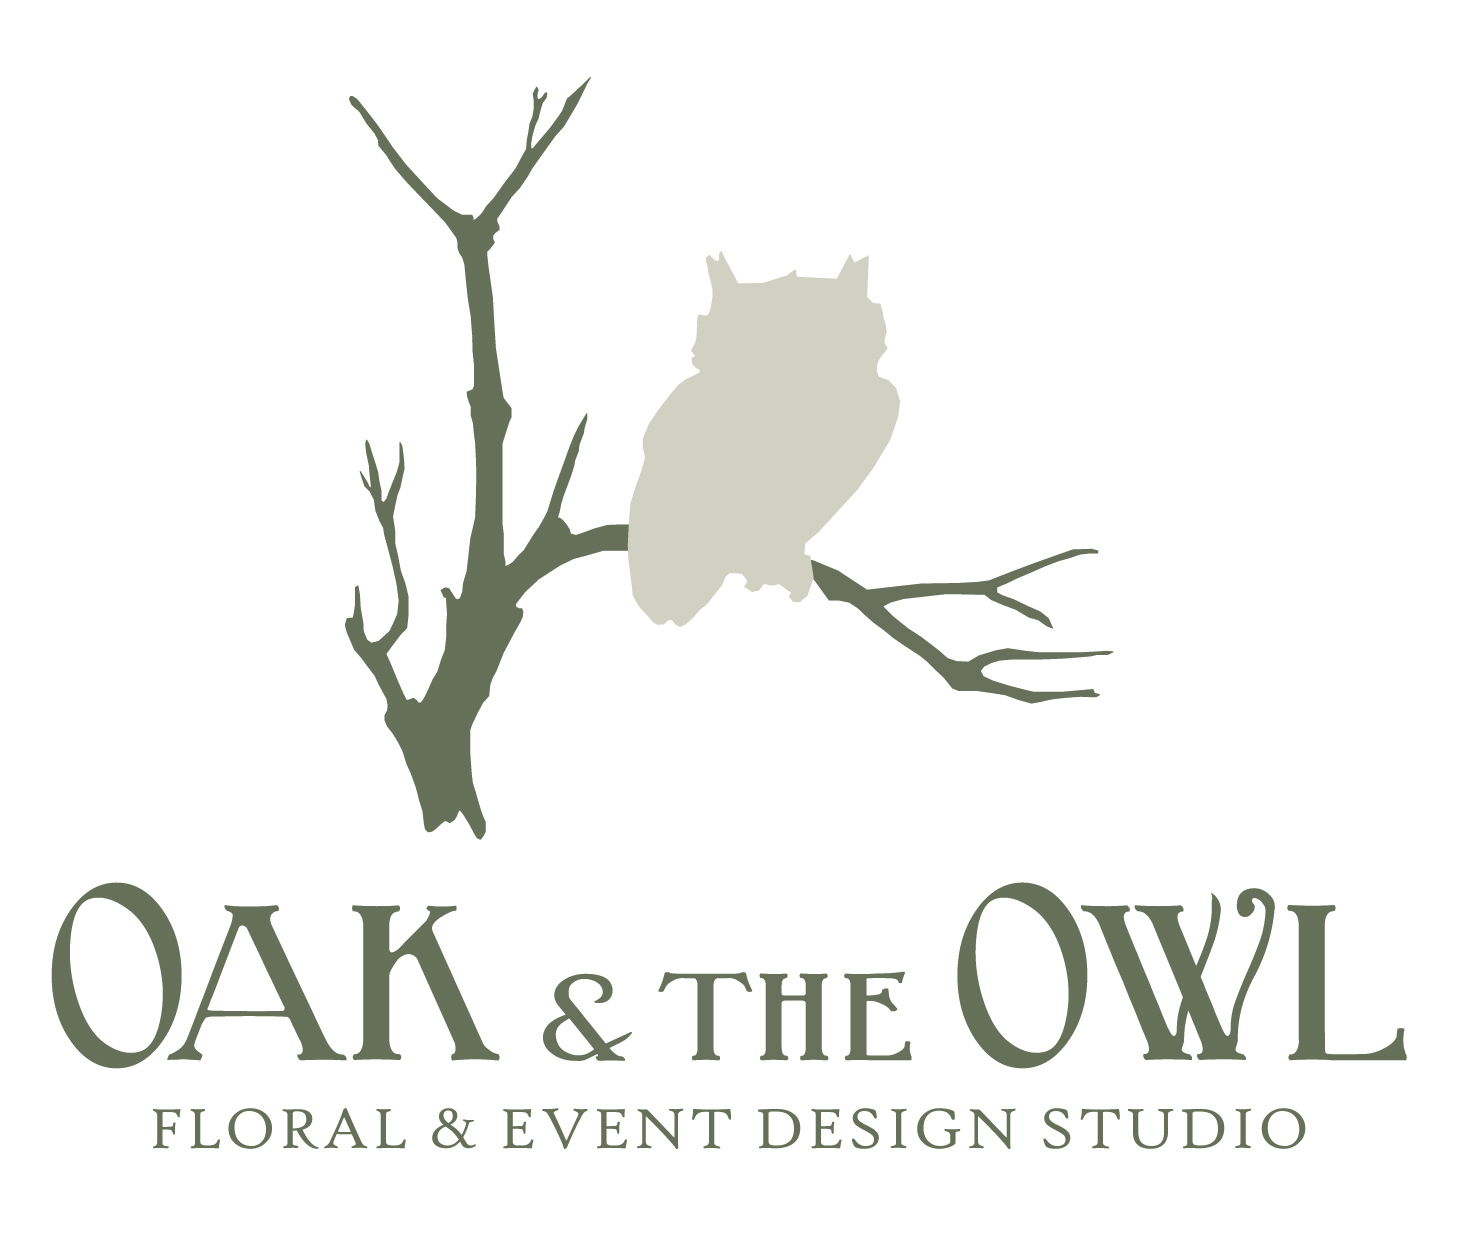 Oak and the Owl